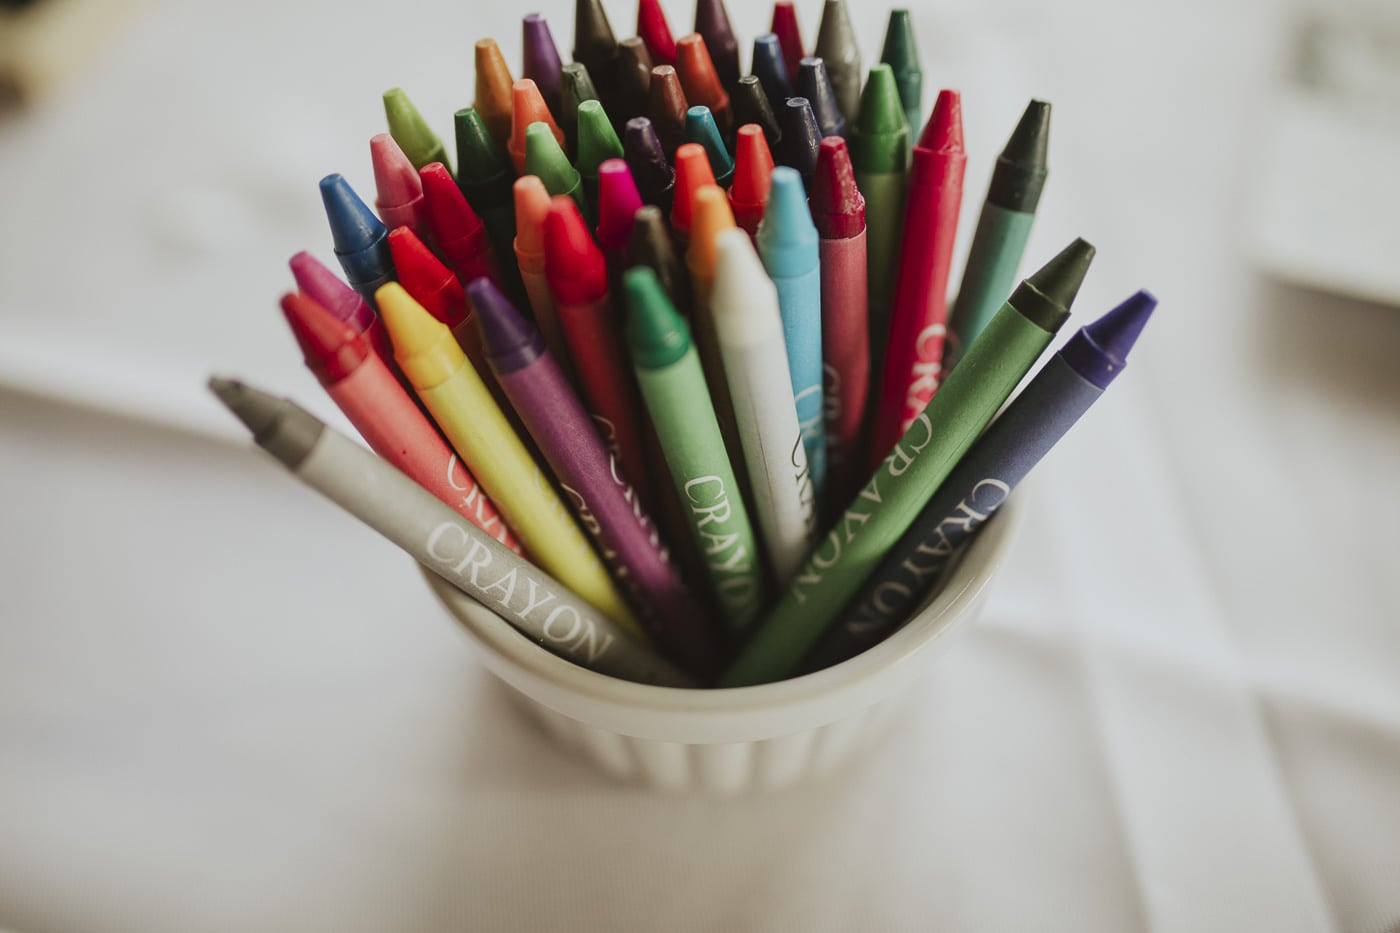 Tub of crayons by Joshua Wyborn